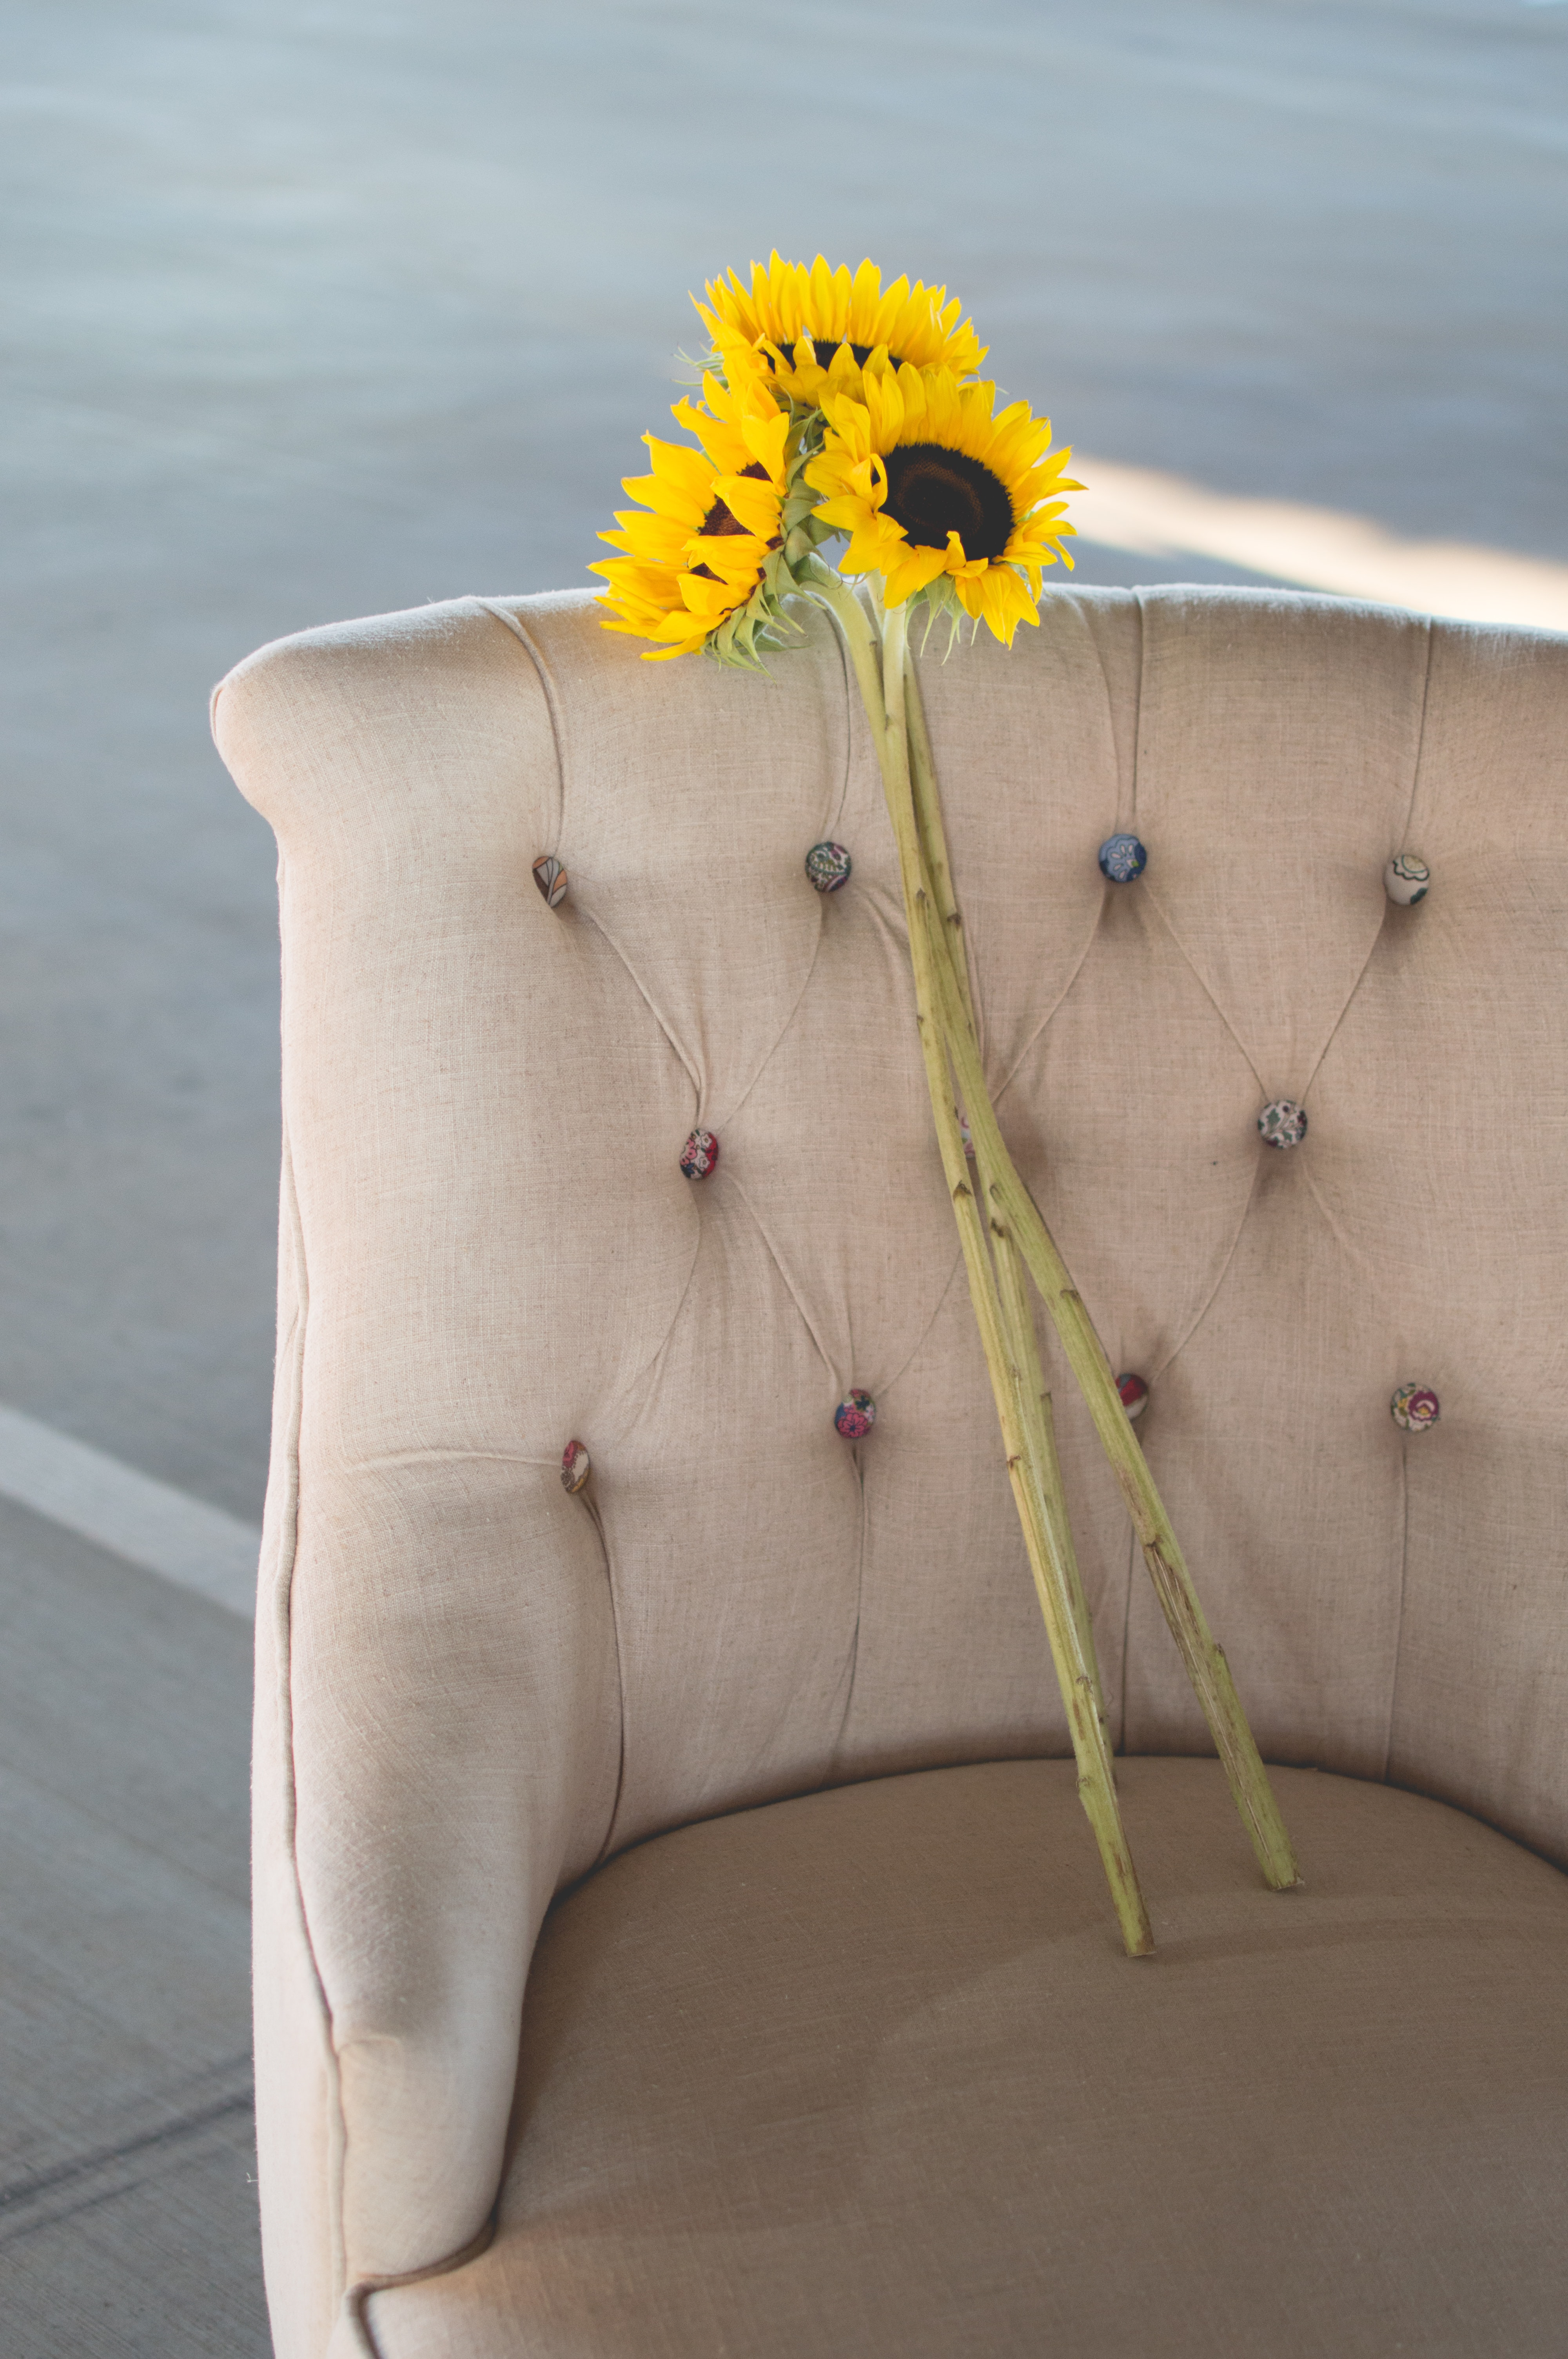 Three sunflowers on long stems in an armchair